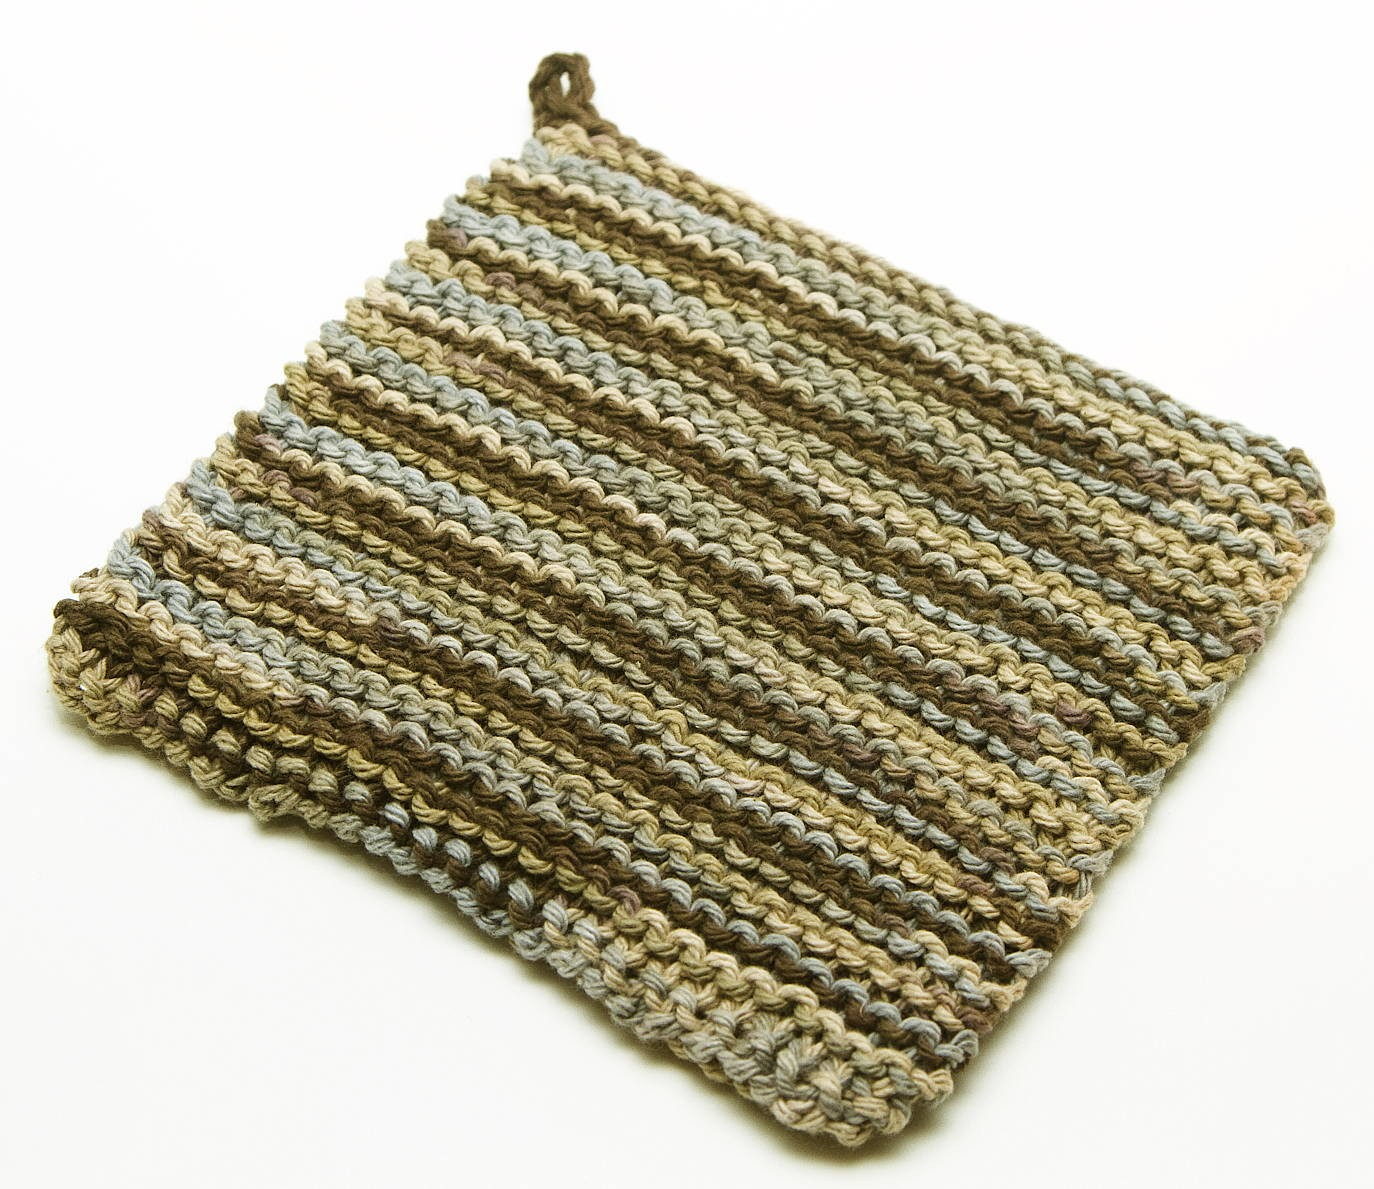 Pot Holder Knitting Pattern | A Knitting Blog